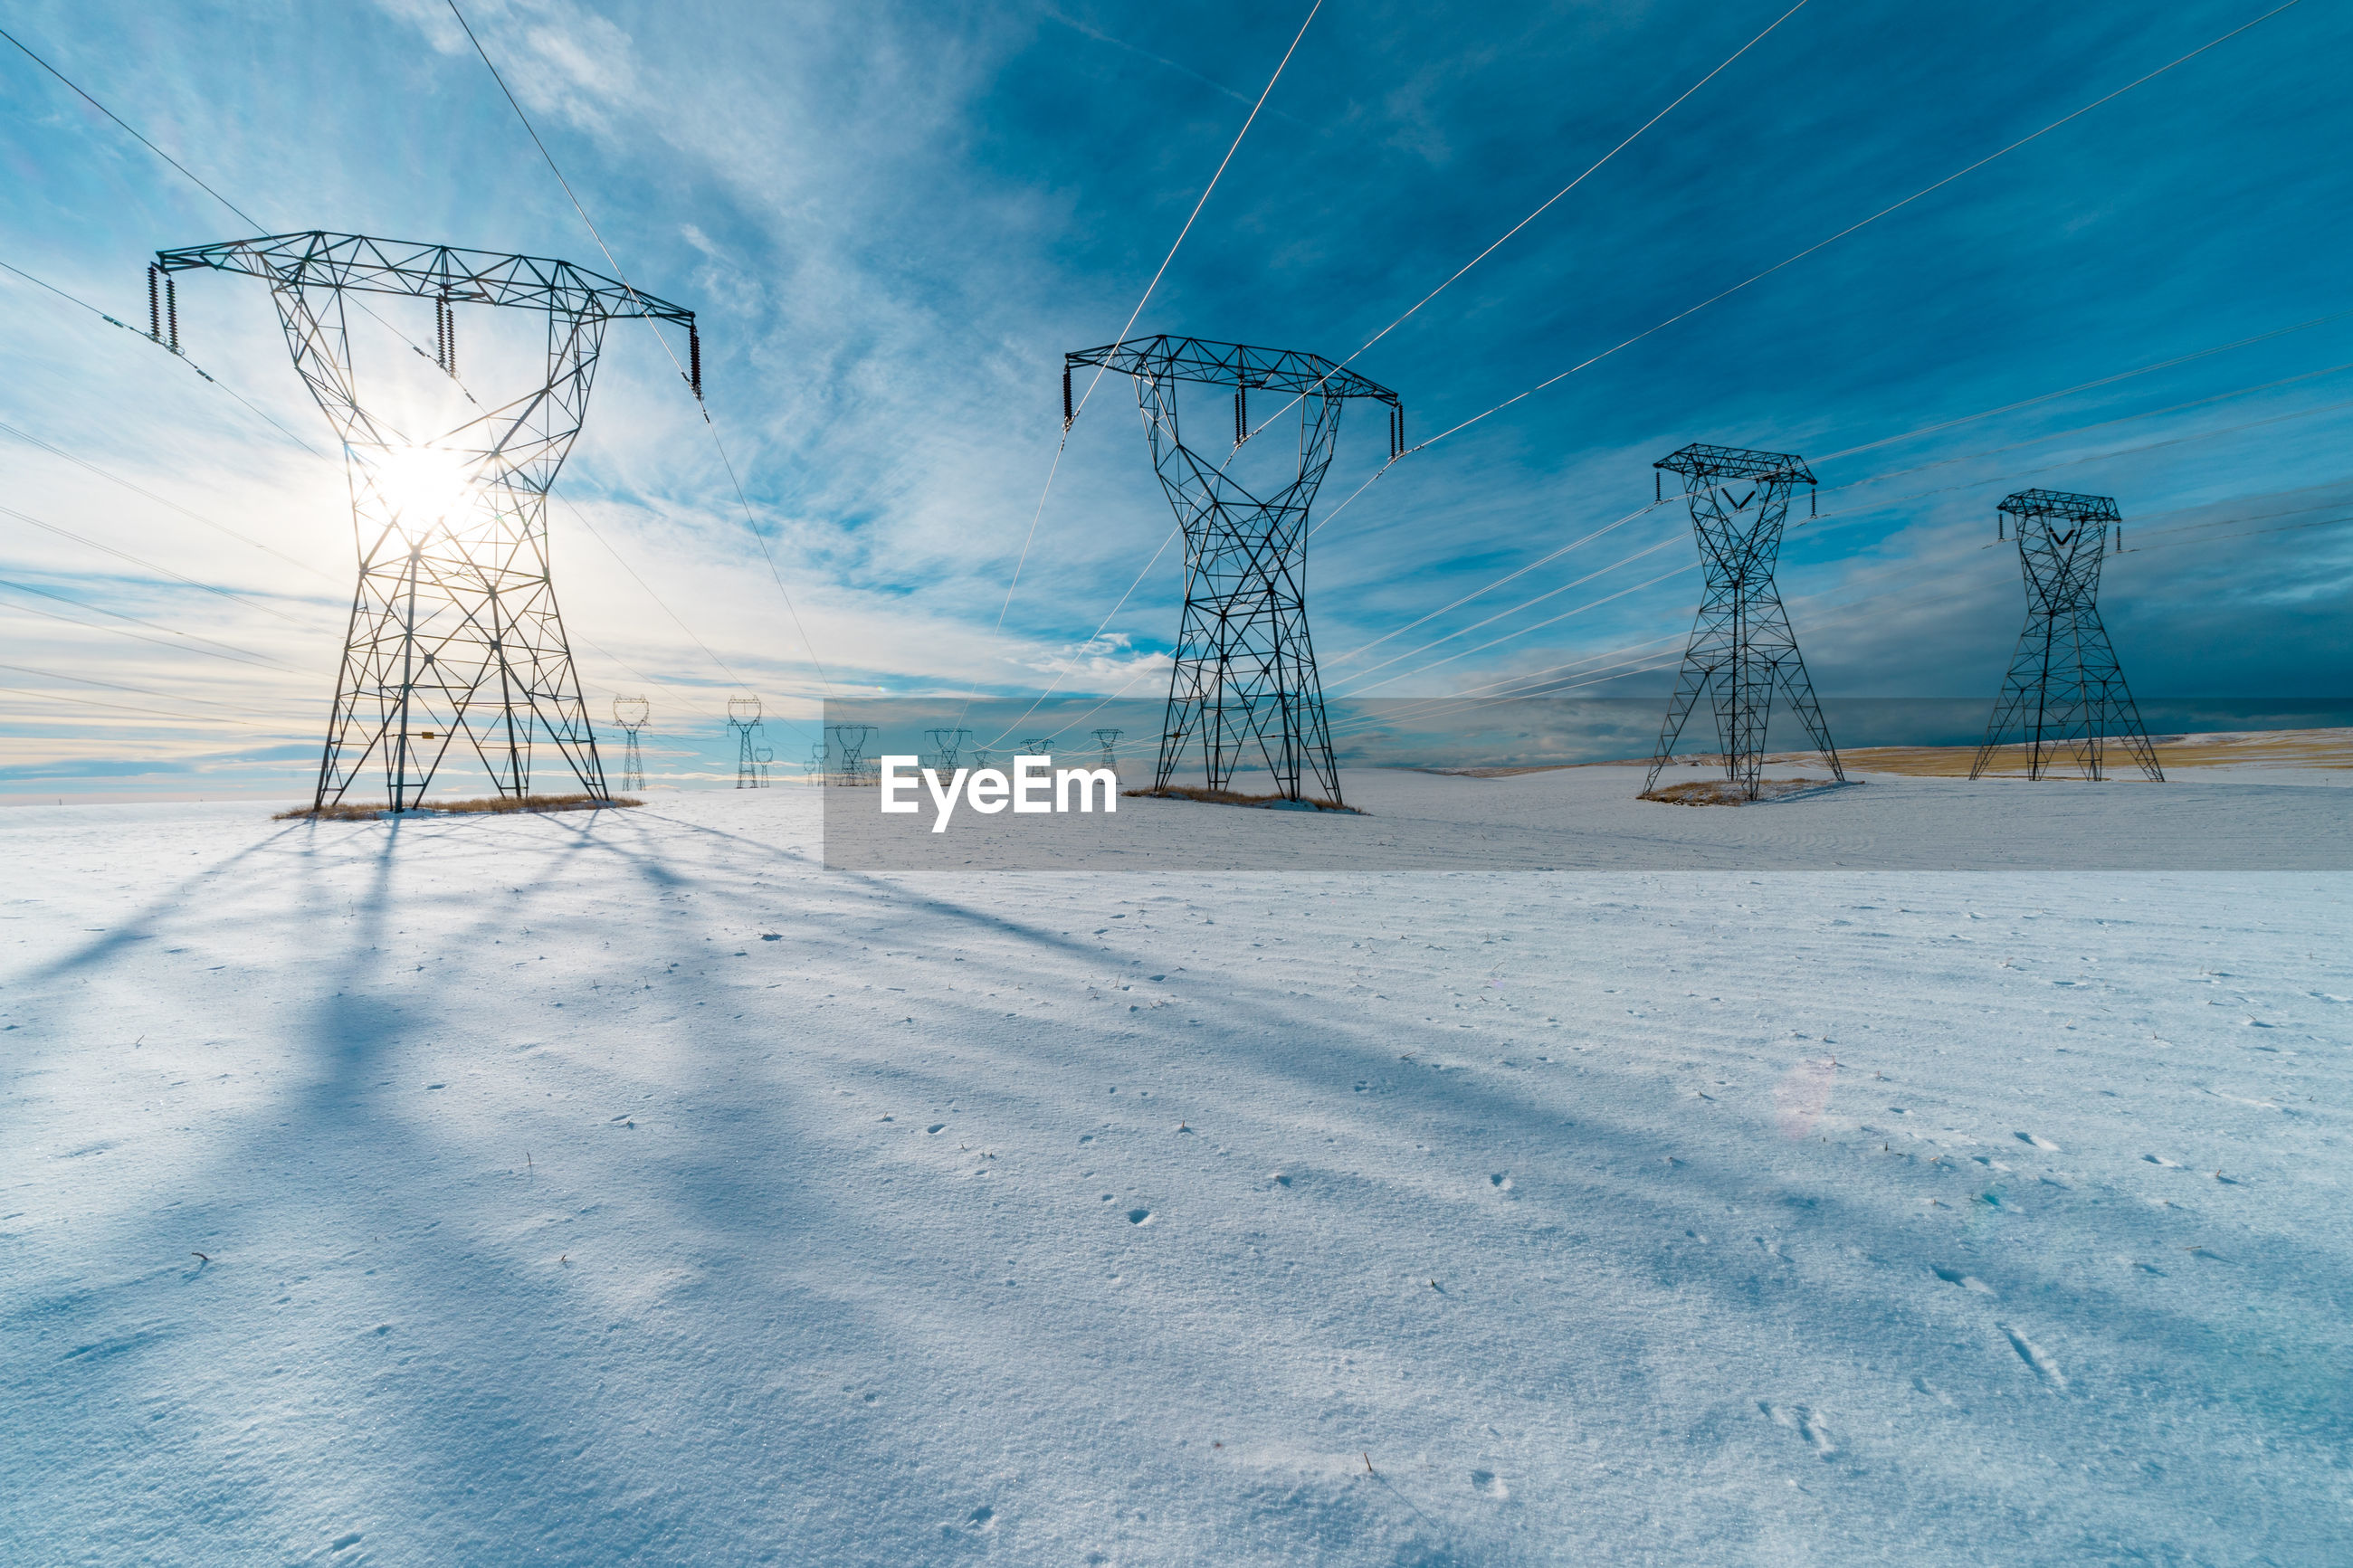 Electricity pylons on snow covered landscape